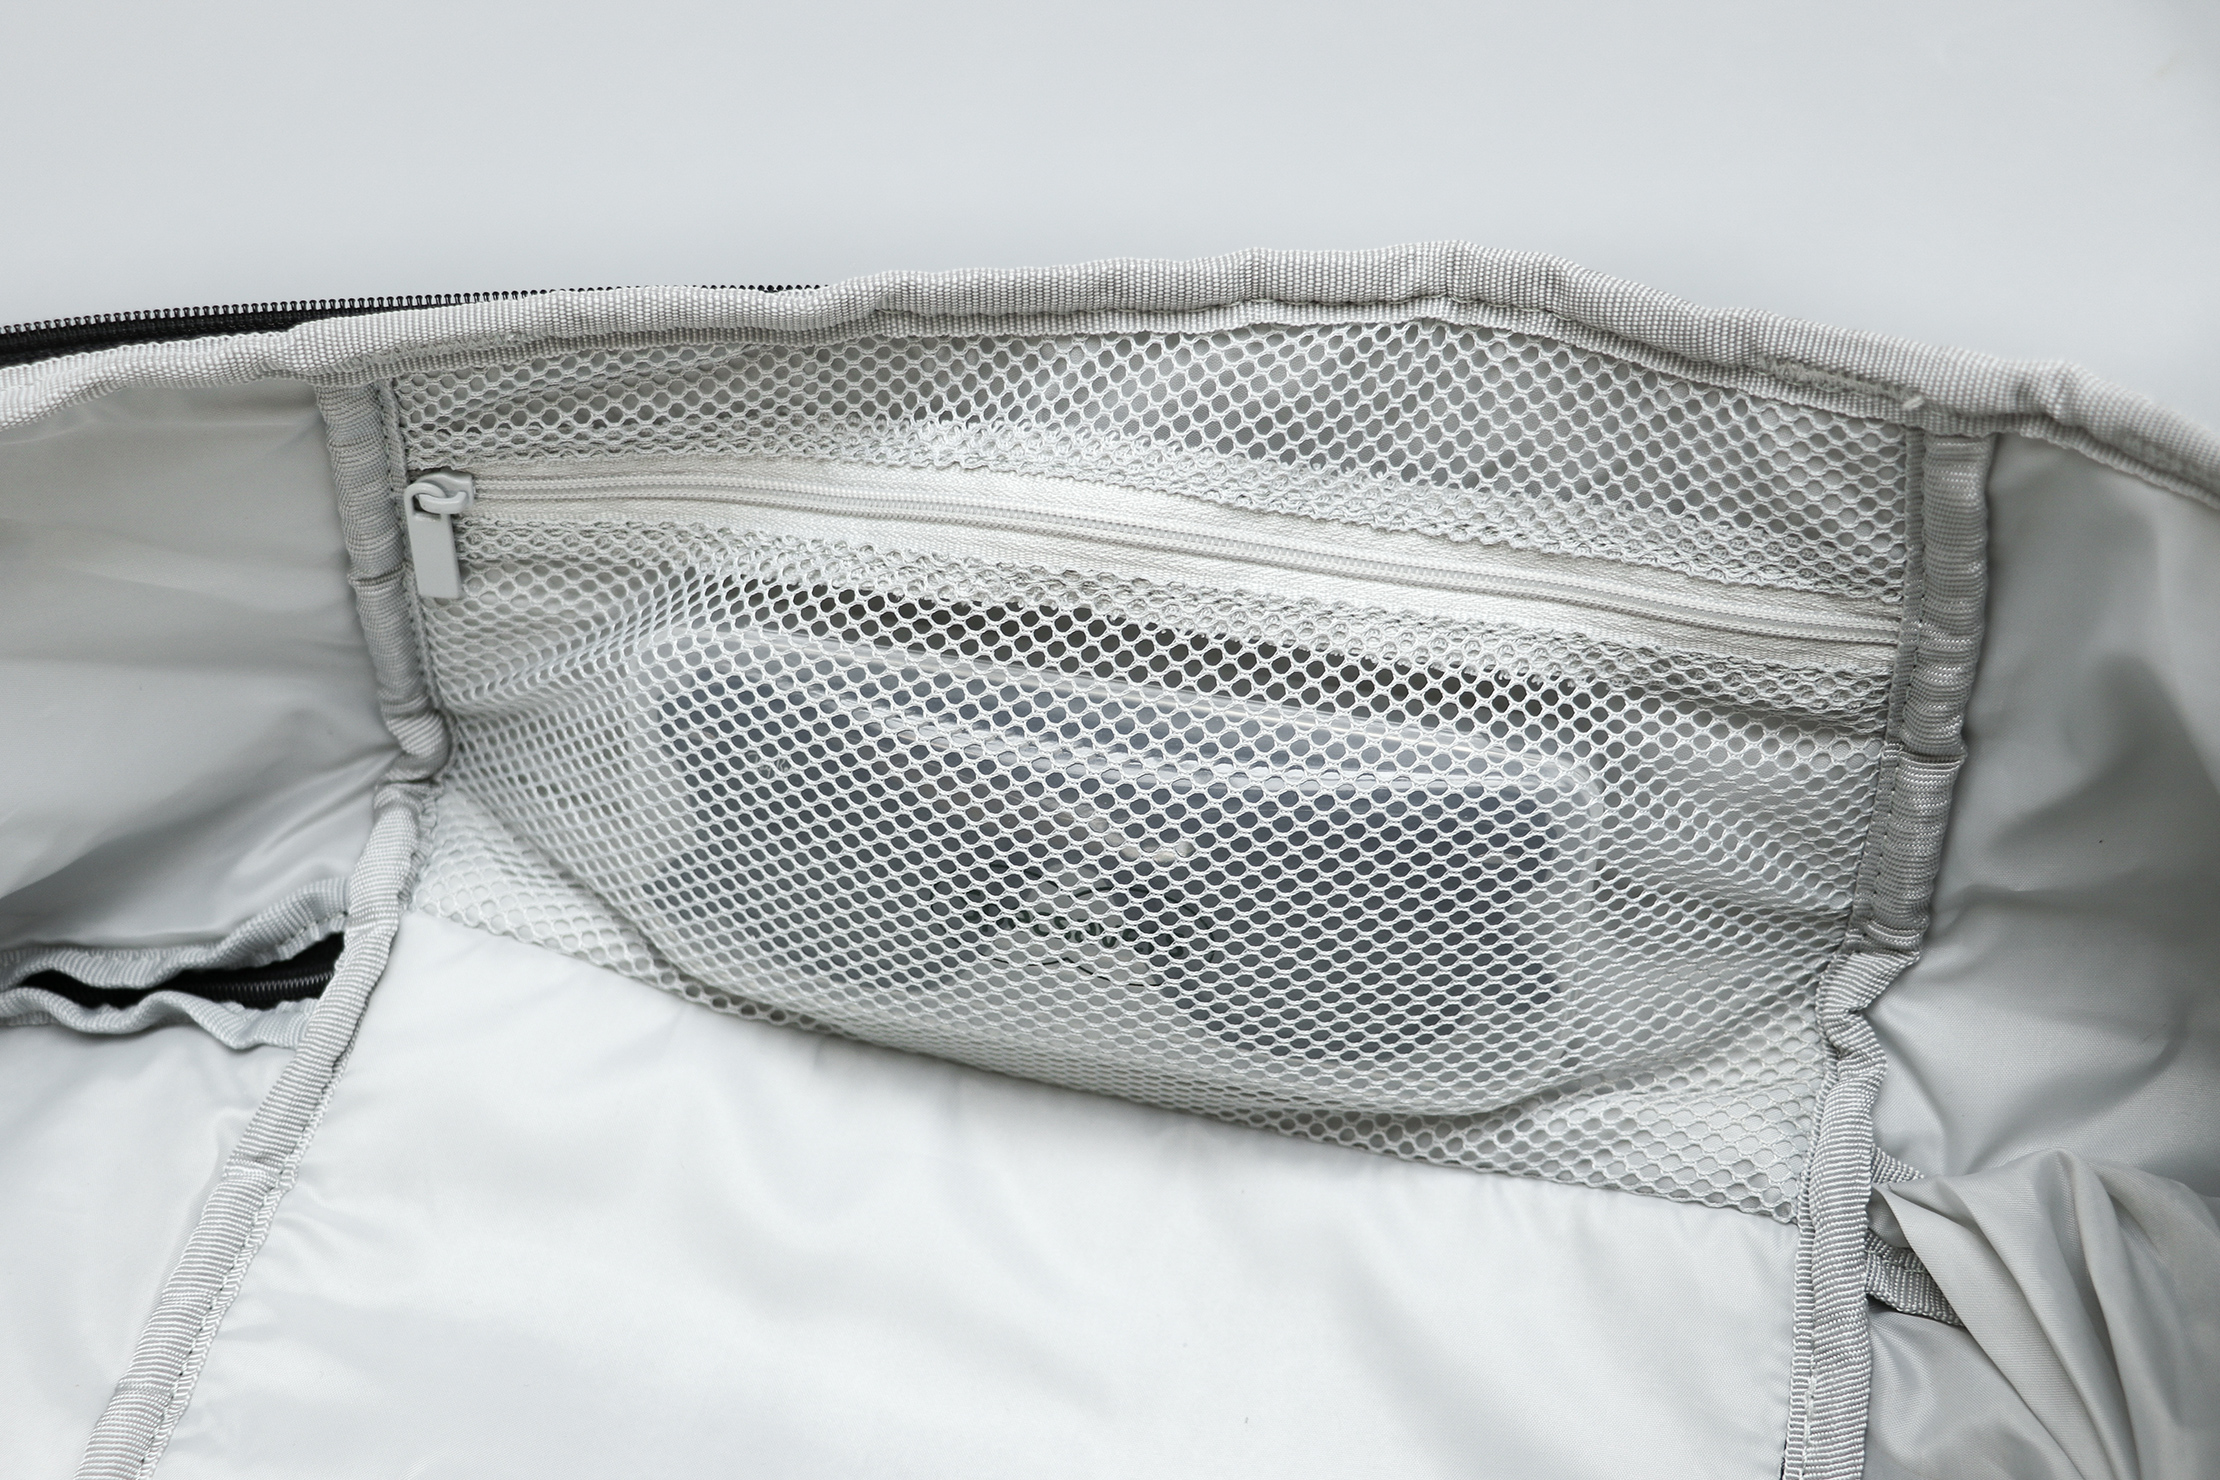 IKEA VARLDENS Backpack 36L Main Compartment Side Mesh Pocket